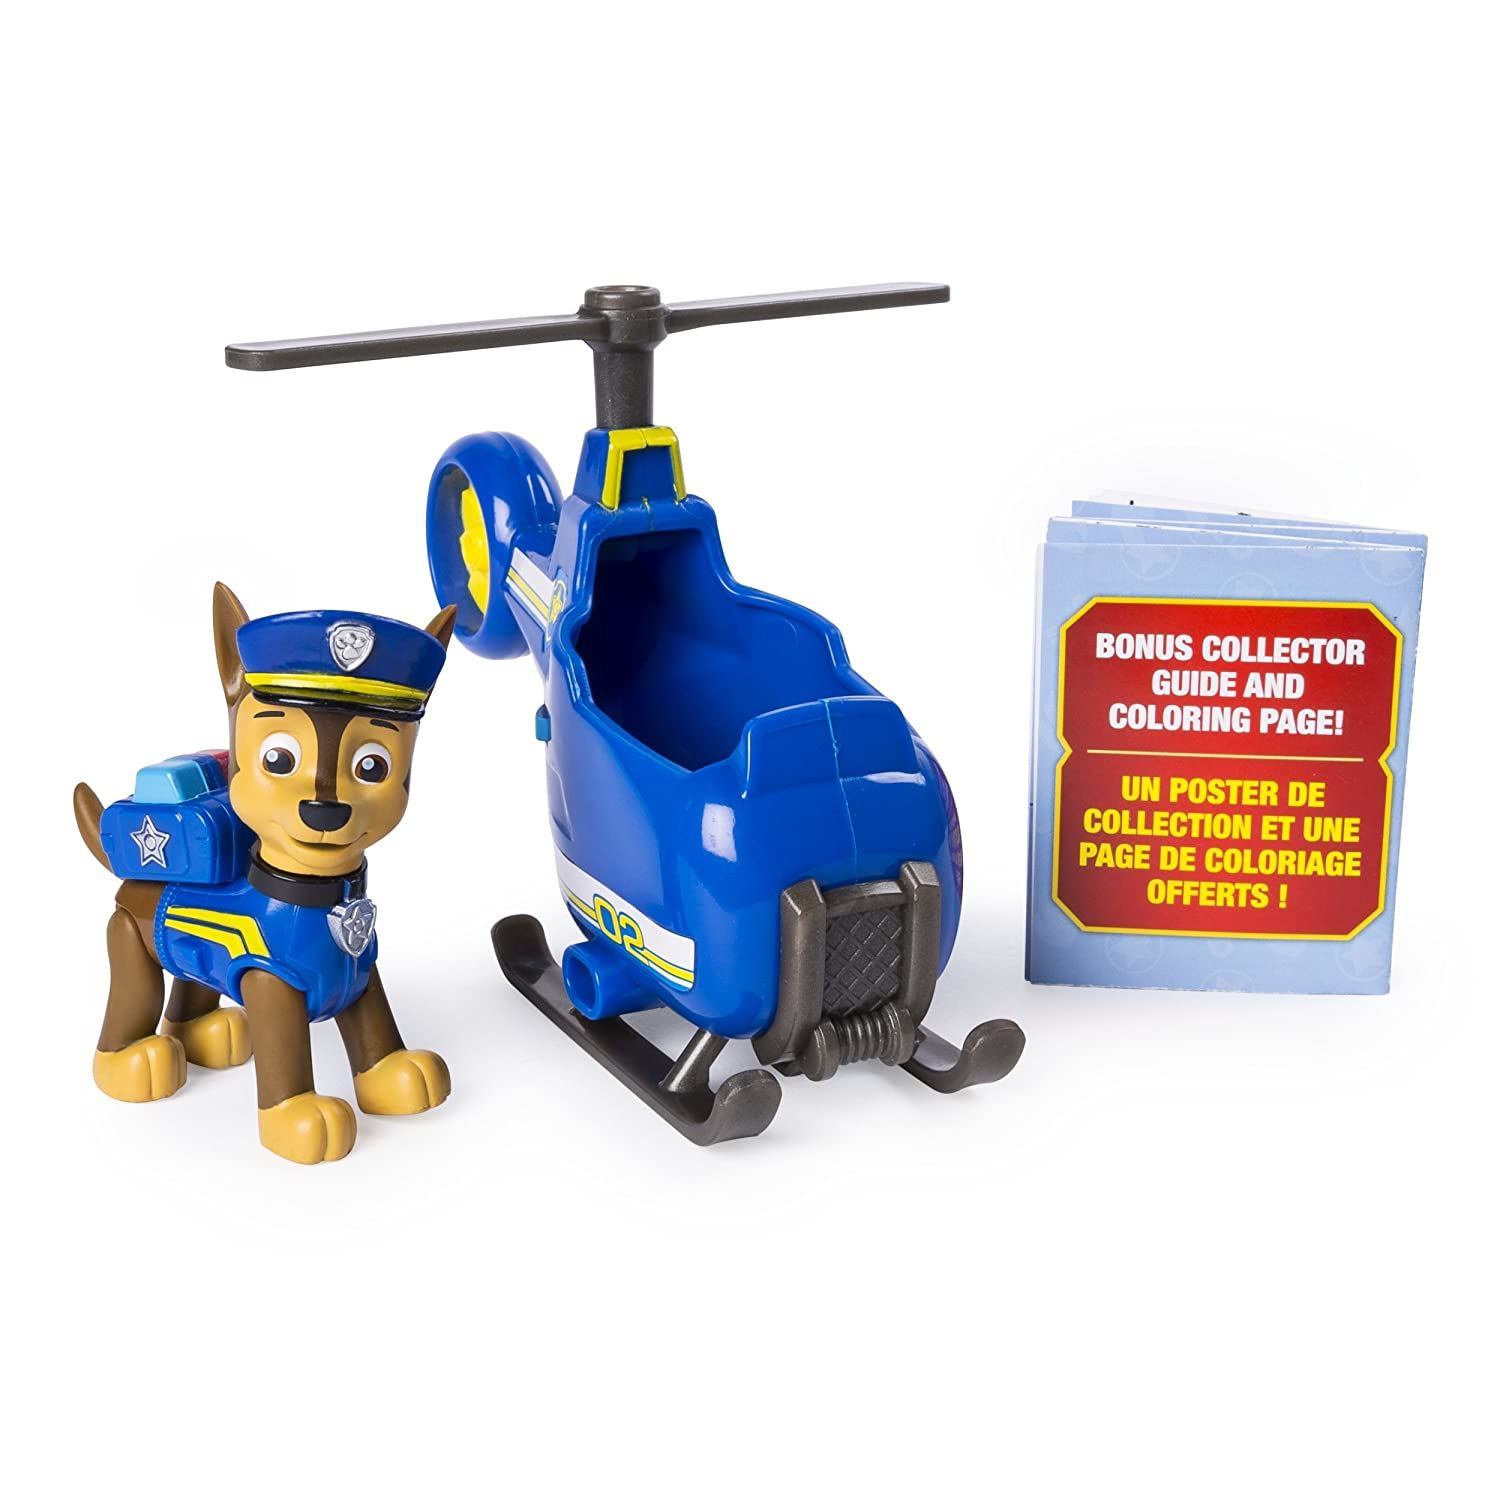 Paw Patrol 20101379-6046665 Ultimate Rescue, Chase's Mini Helicopter with Collectible Figure for Ages 3 and Up